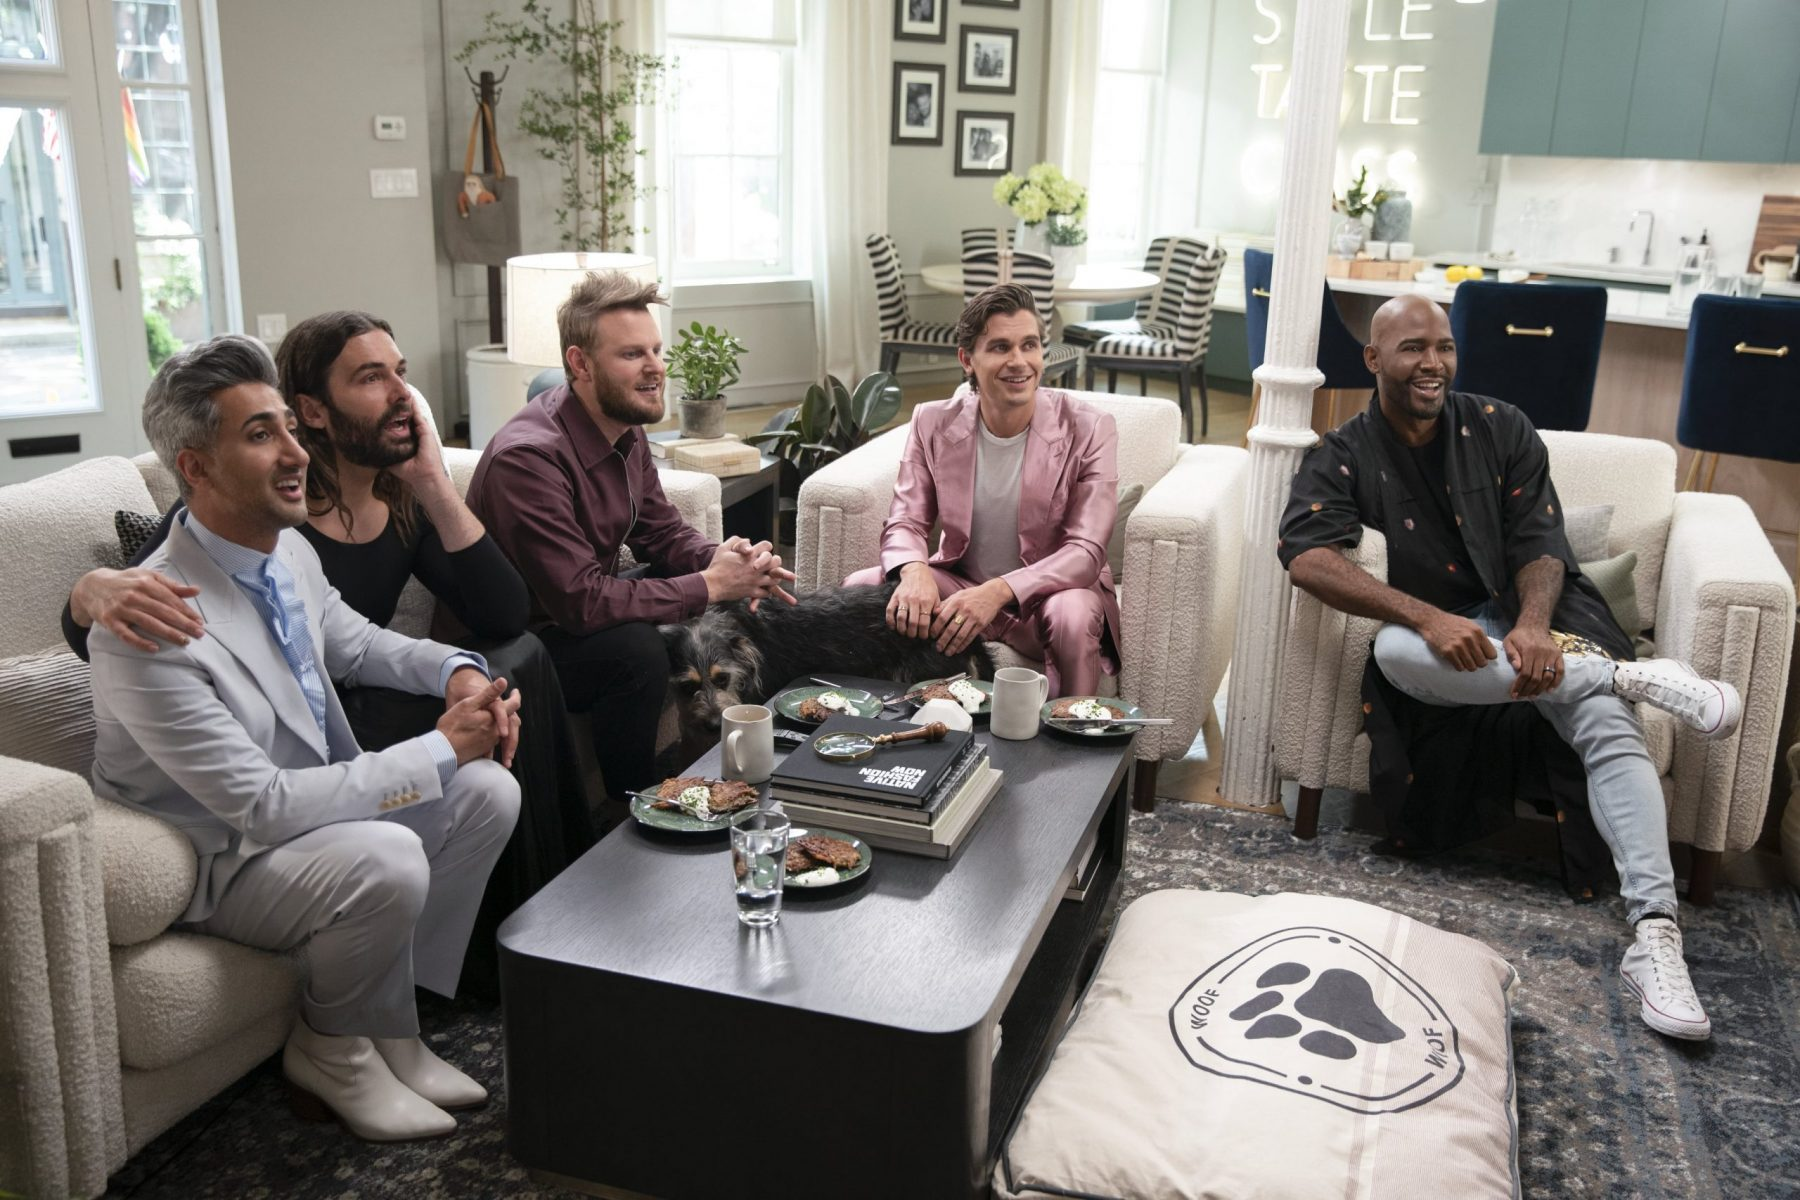 The Fab Five of Queer Eye sit on couches together